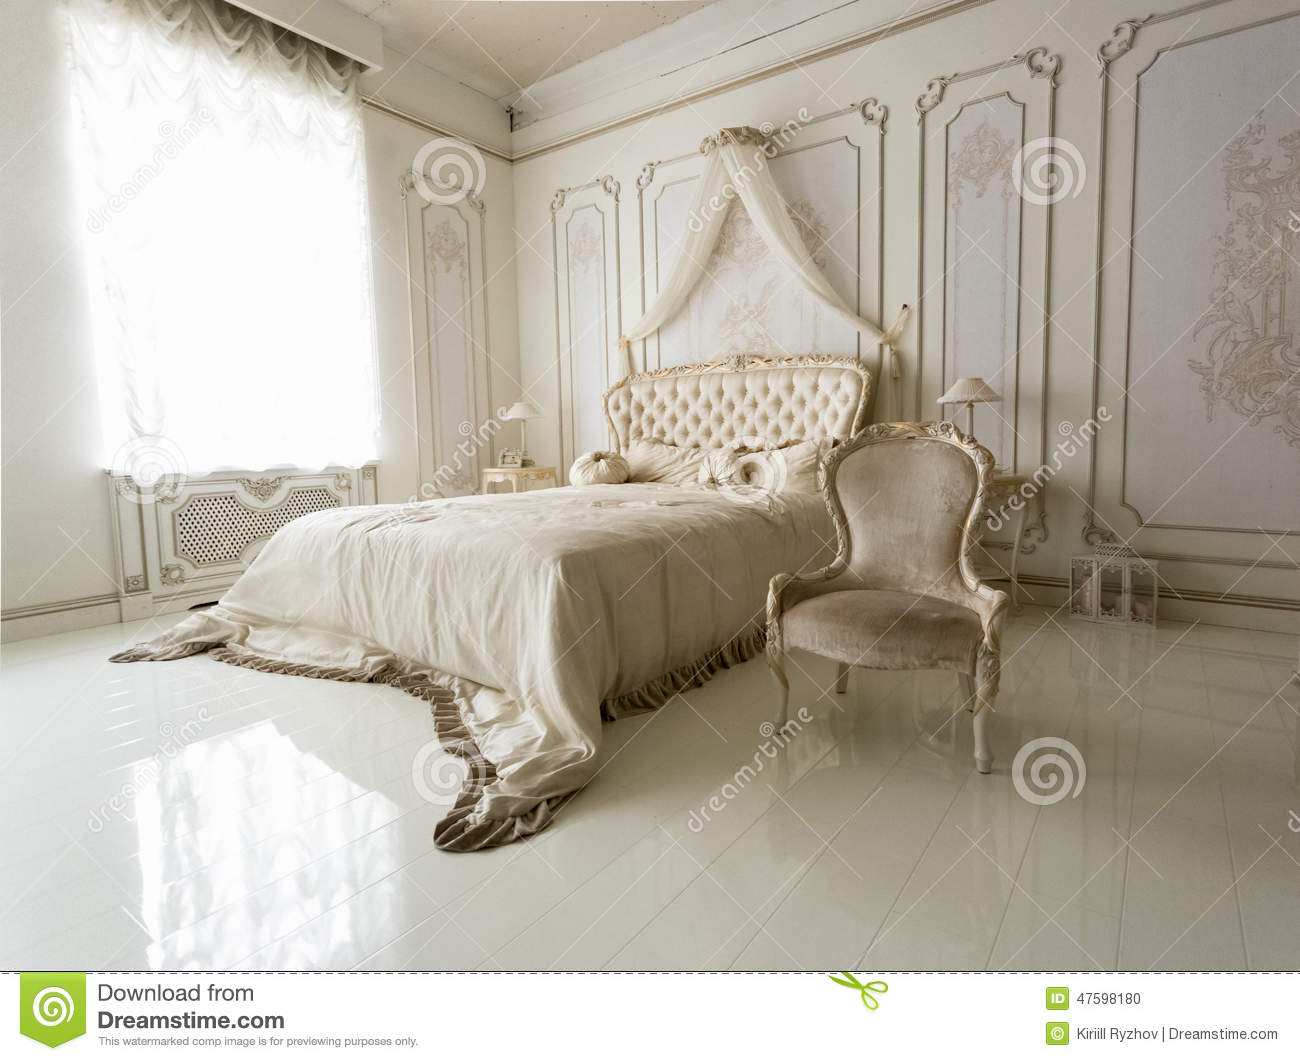 white bedroom chair broyhill lenora club interior of classic with big bed and stock photo beautiful